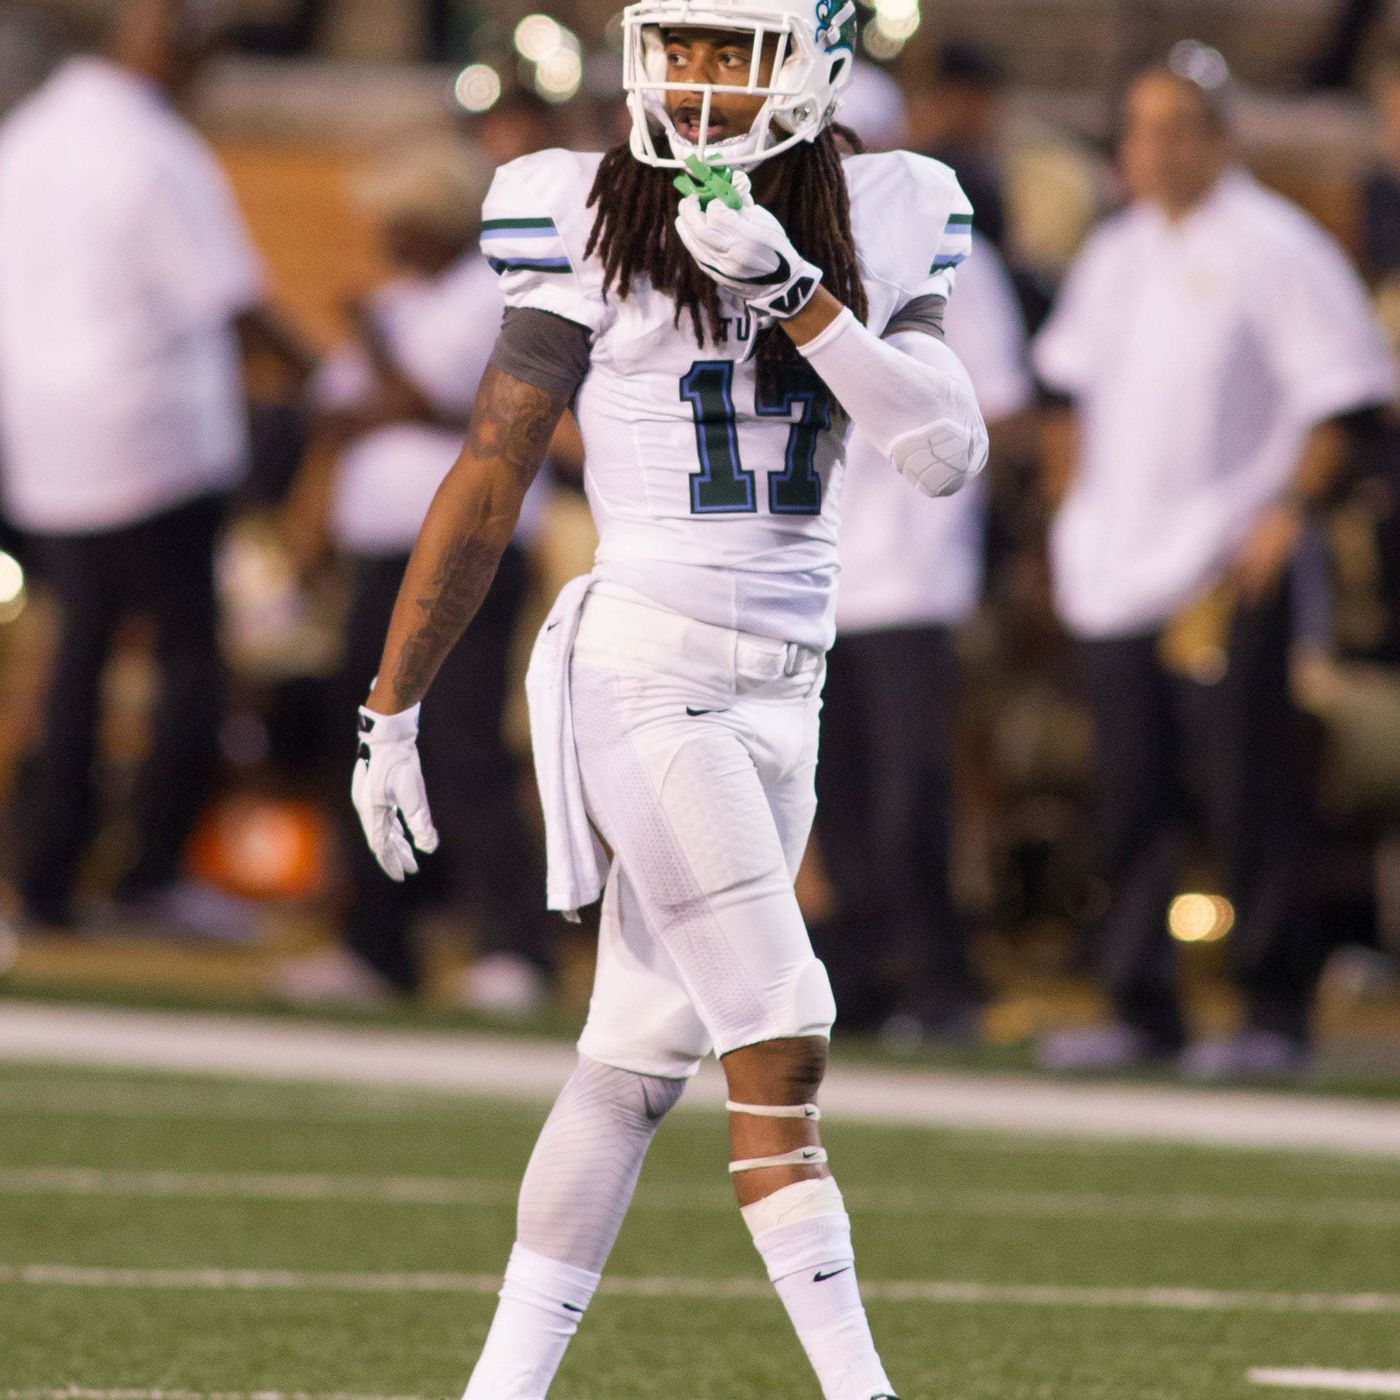 sale retailer bbbcd 7d040 Jets sign sixth round picks Parry Nickerson and Folorunso ...